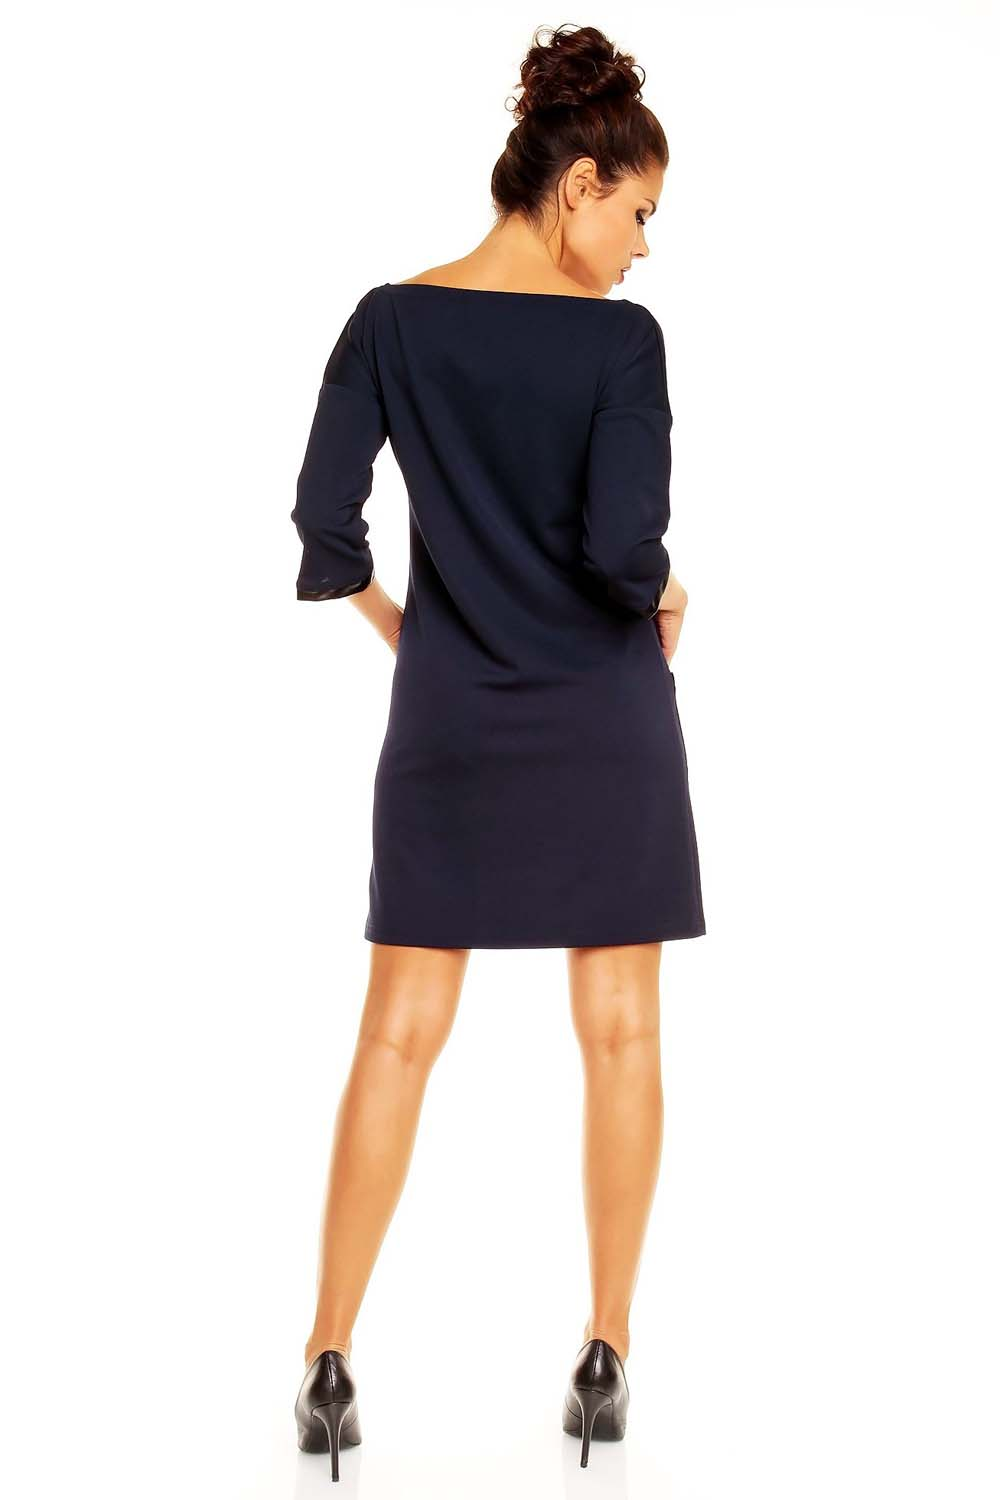 Navy Blue Shift Dress with Leather Trimmings